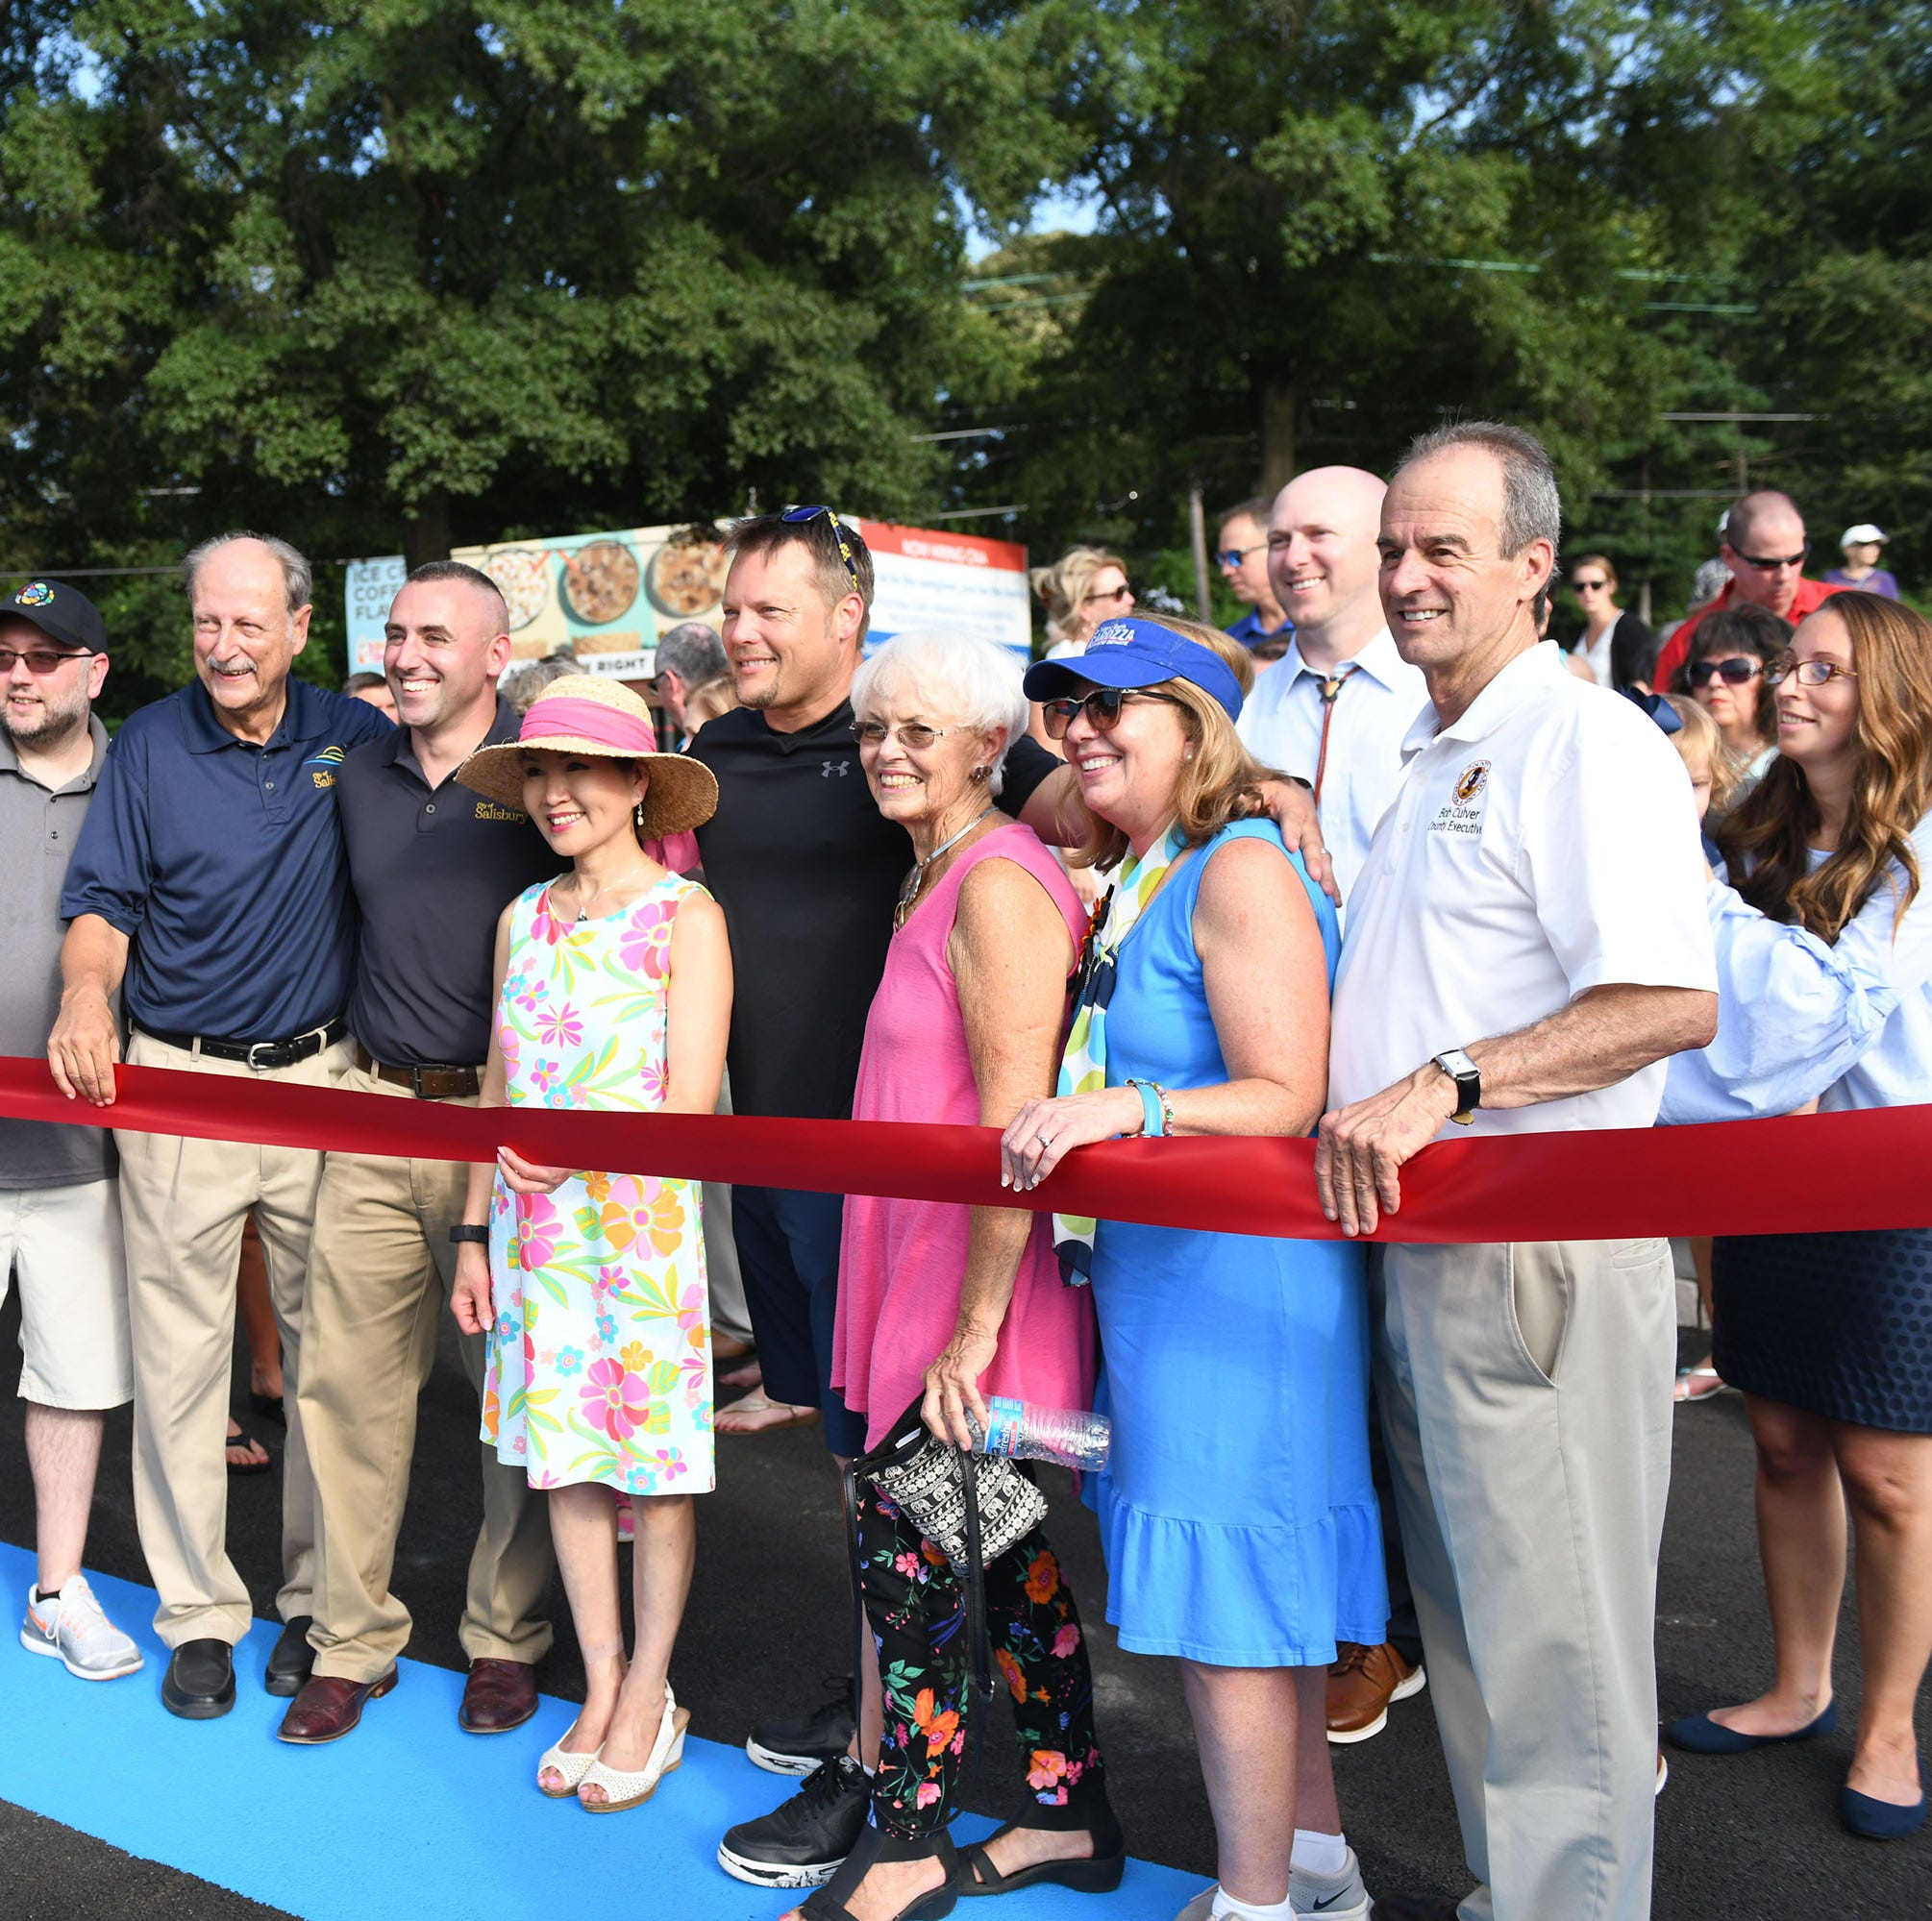 Maryland's First Lady Yumi Hogan and Mayor Jake Day joined the community for the ribbon cutting and celebration of the new Riverwalk Amphitheater on Friday, August 17, 2018.